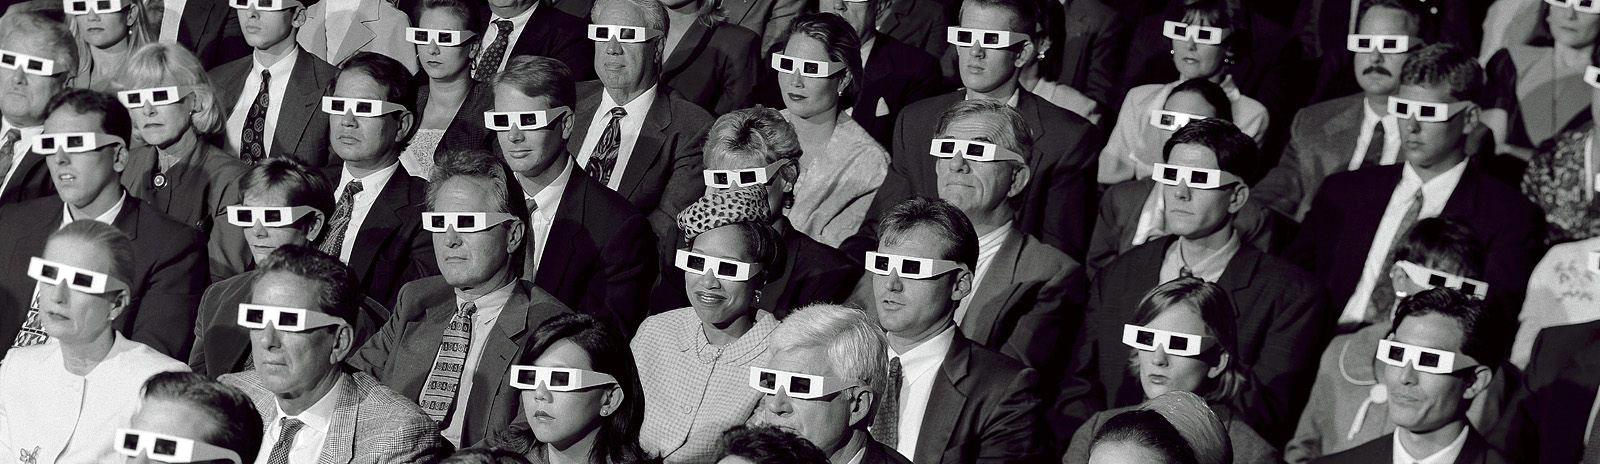 audience-with-3d-glasses 3